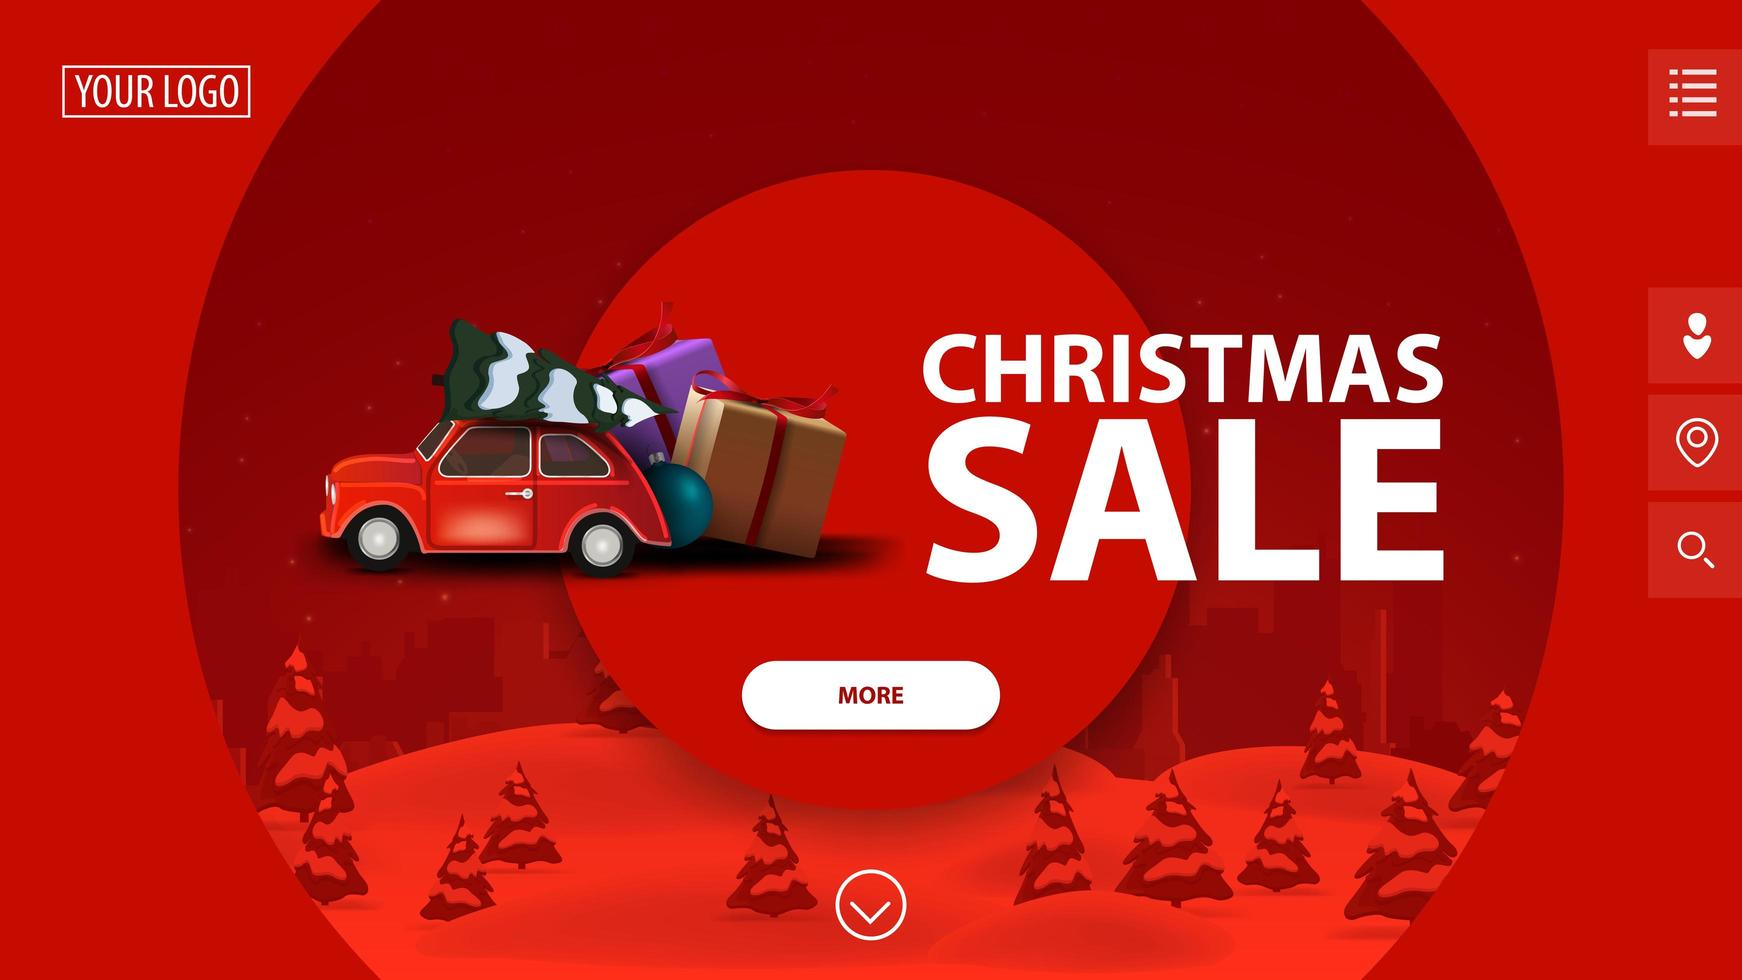 Christmas sale, beautiful red modern discount banner with big decorative circles, winter landscape on background and red vintage car carrying Christmas tree vector